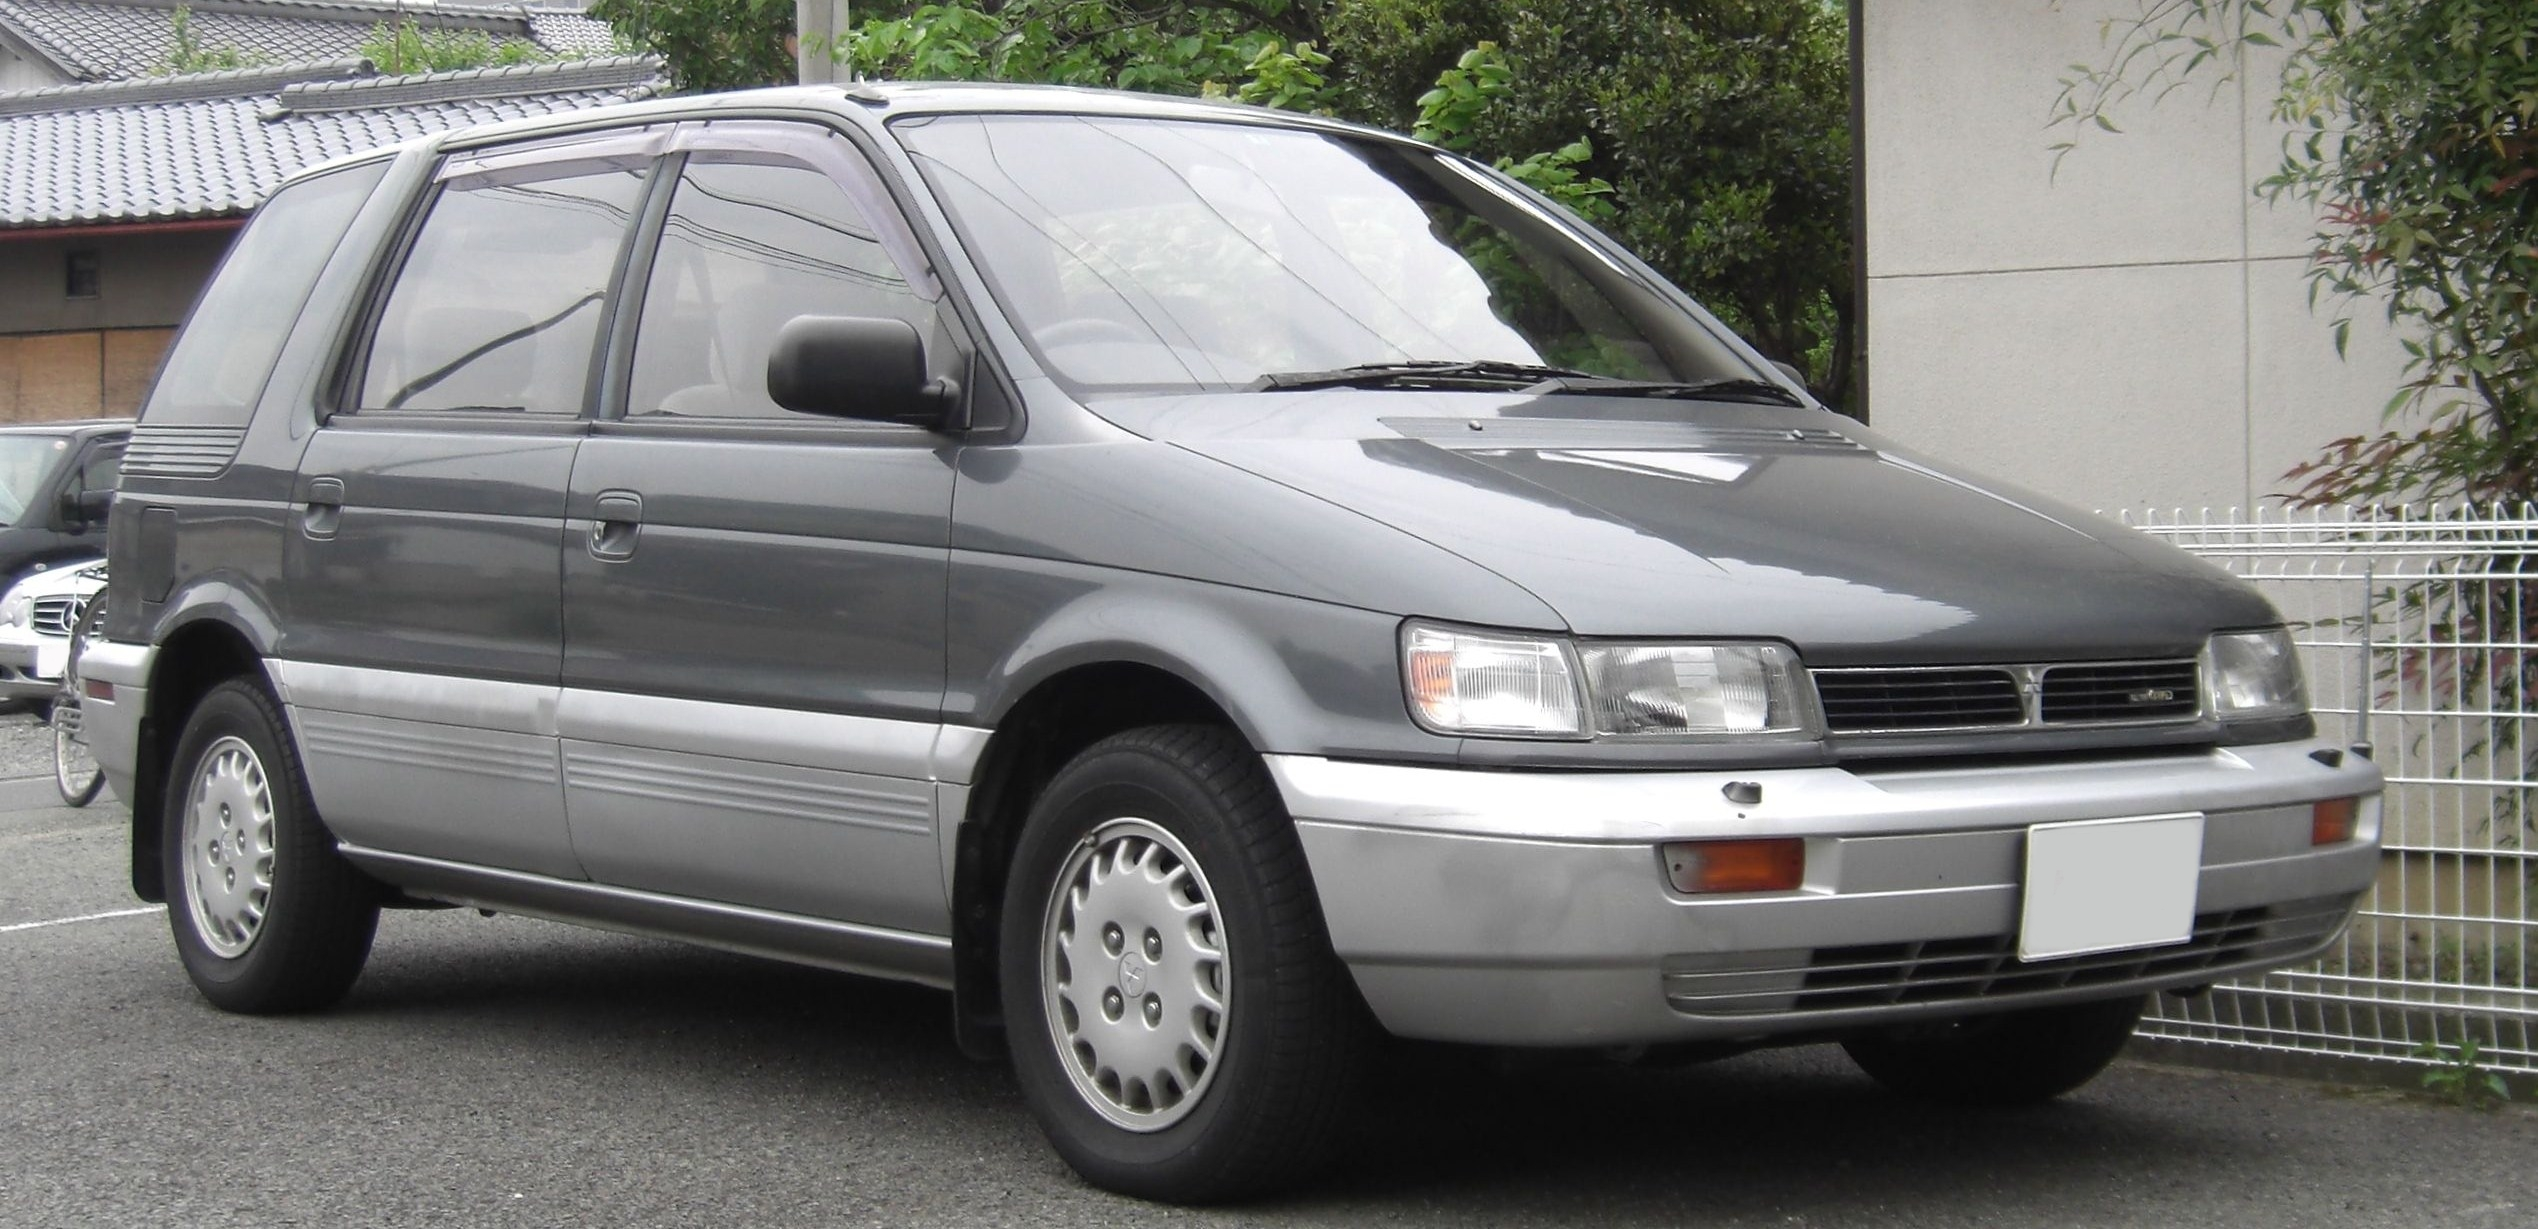 1994 Mitsubishi Space Wagon #16